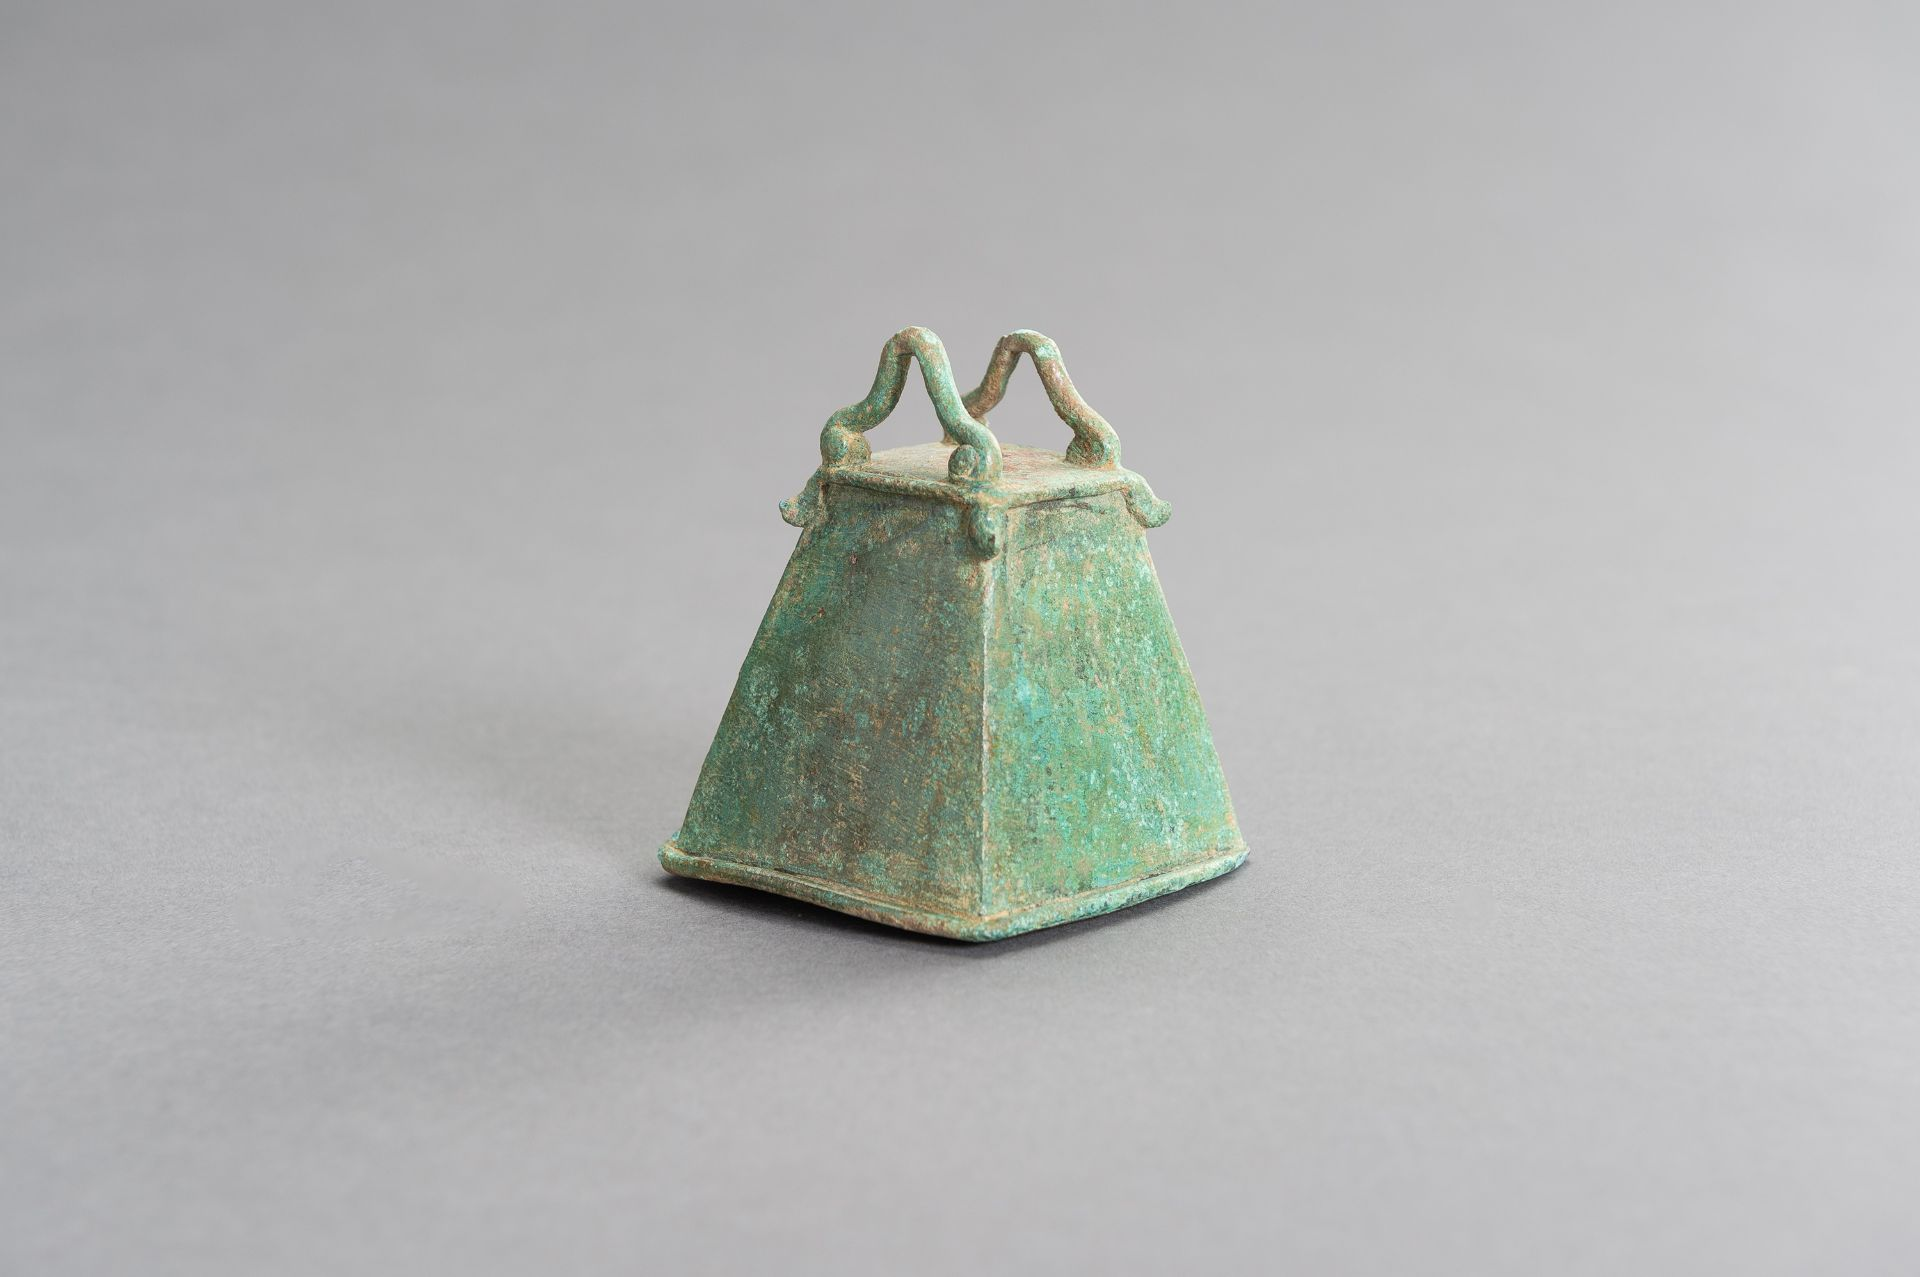 A SMALL BRONZE BELL - Image 4 of 9